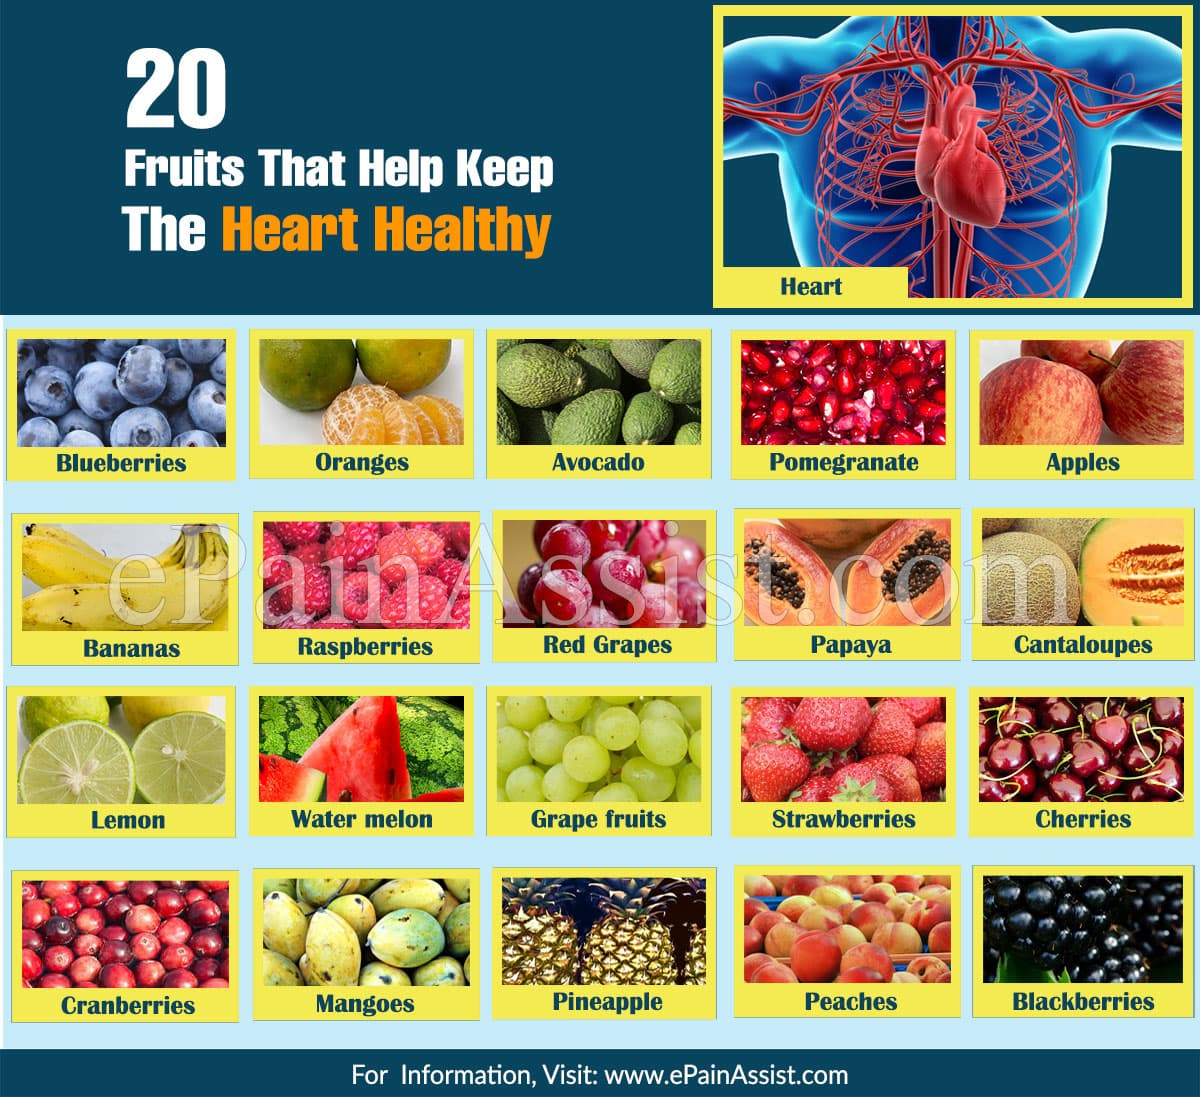 Fruits That Help Keep The Heart Healthy